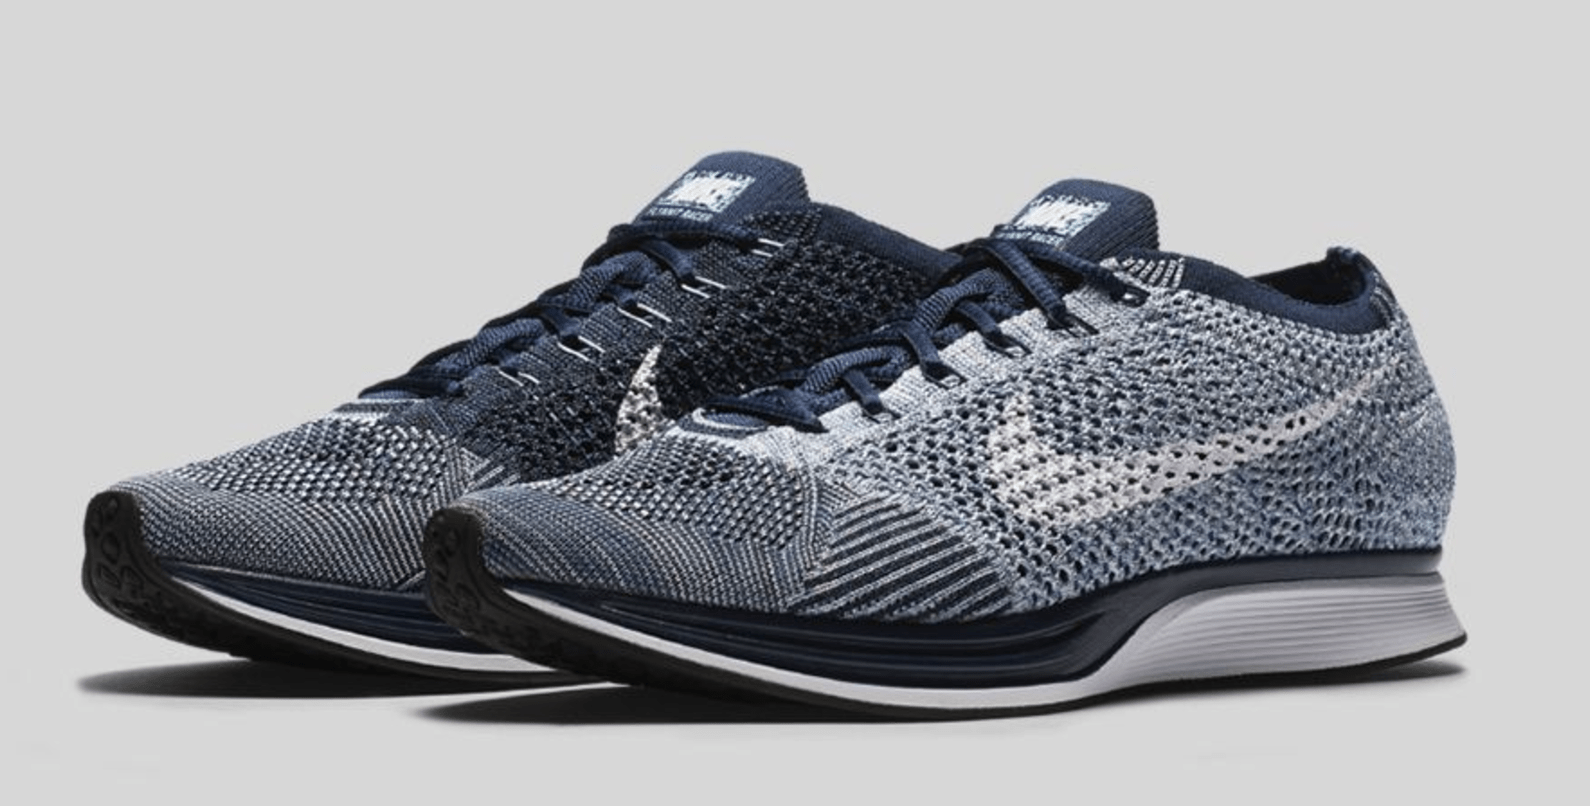 Nike Canada Deals: *New* Flyknit Racer Shoes + Save Up to 50% Off Sale Items!